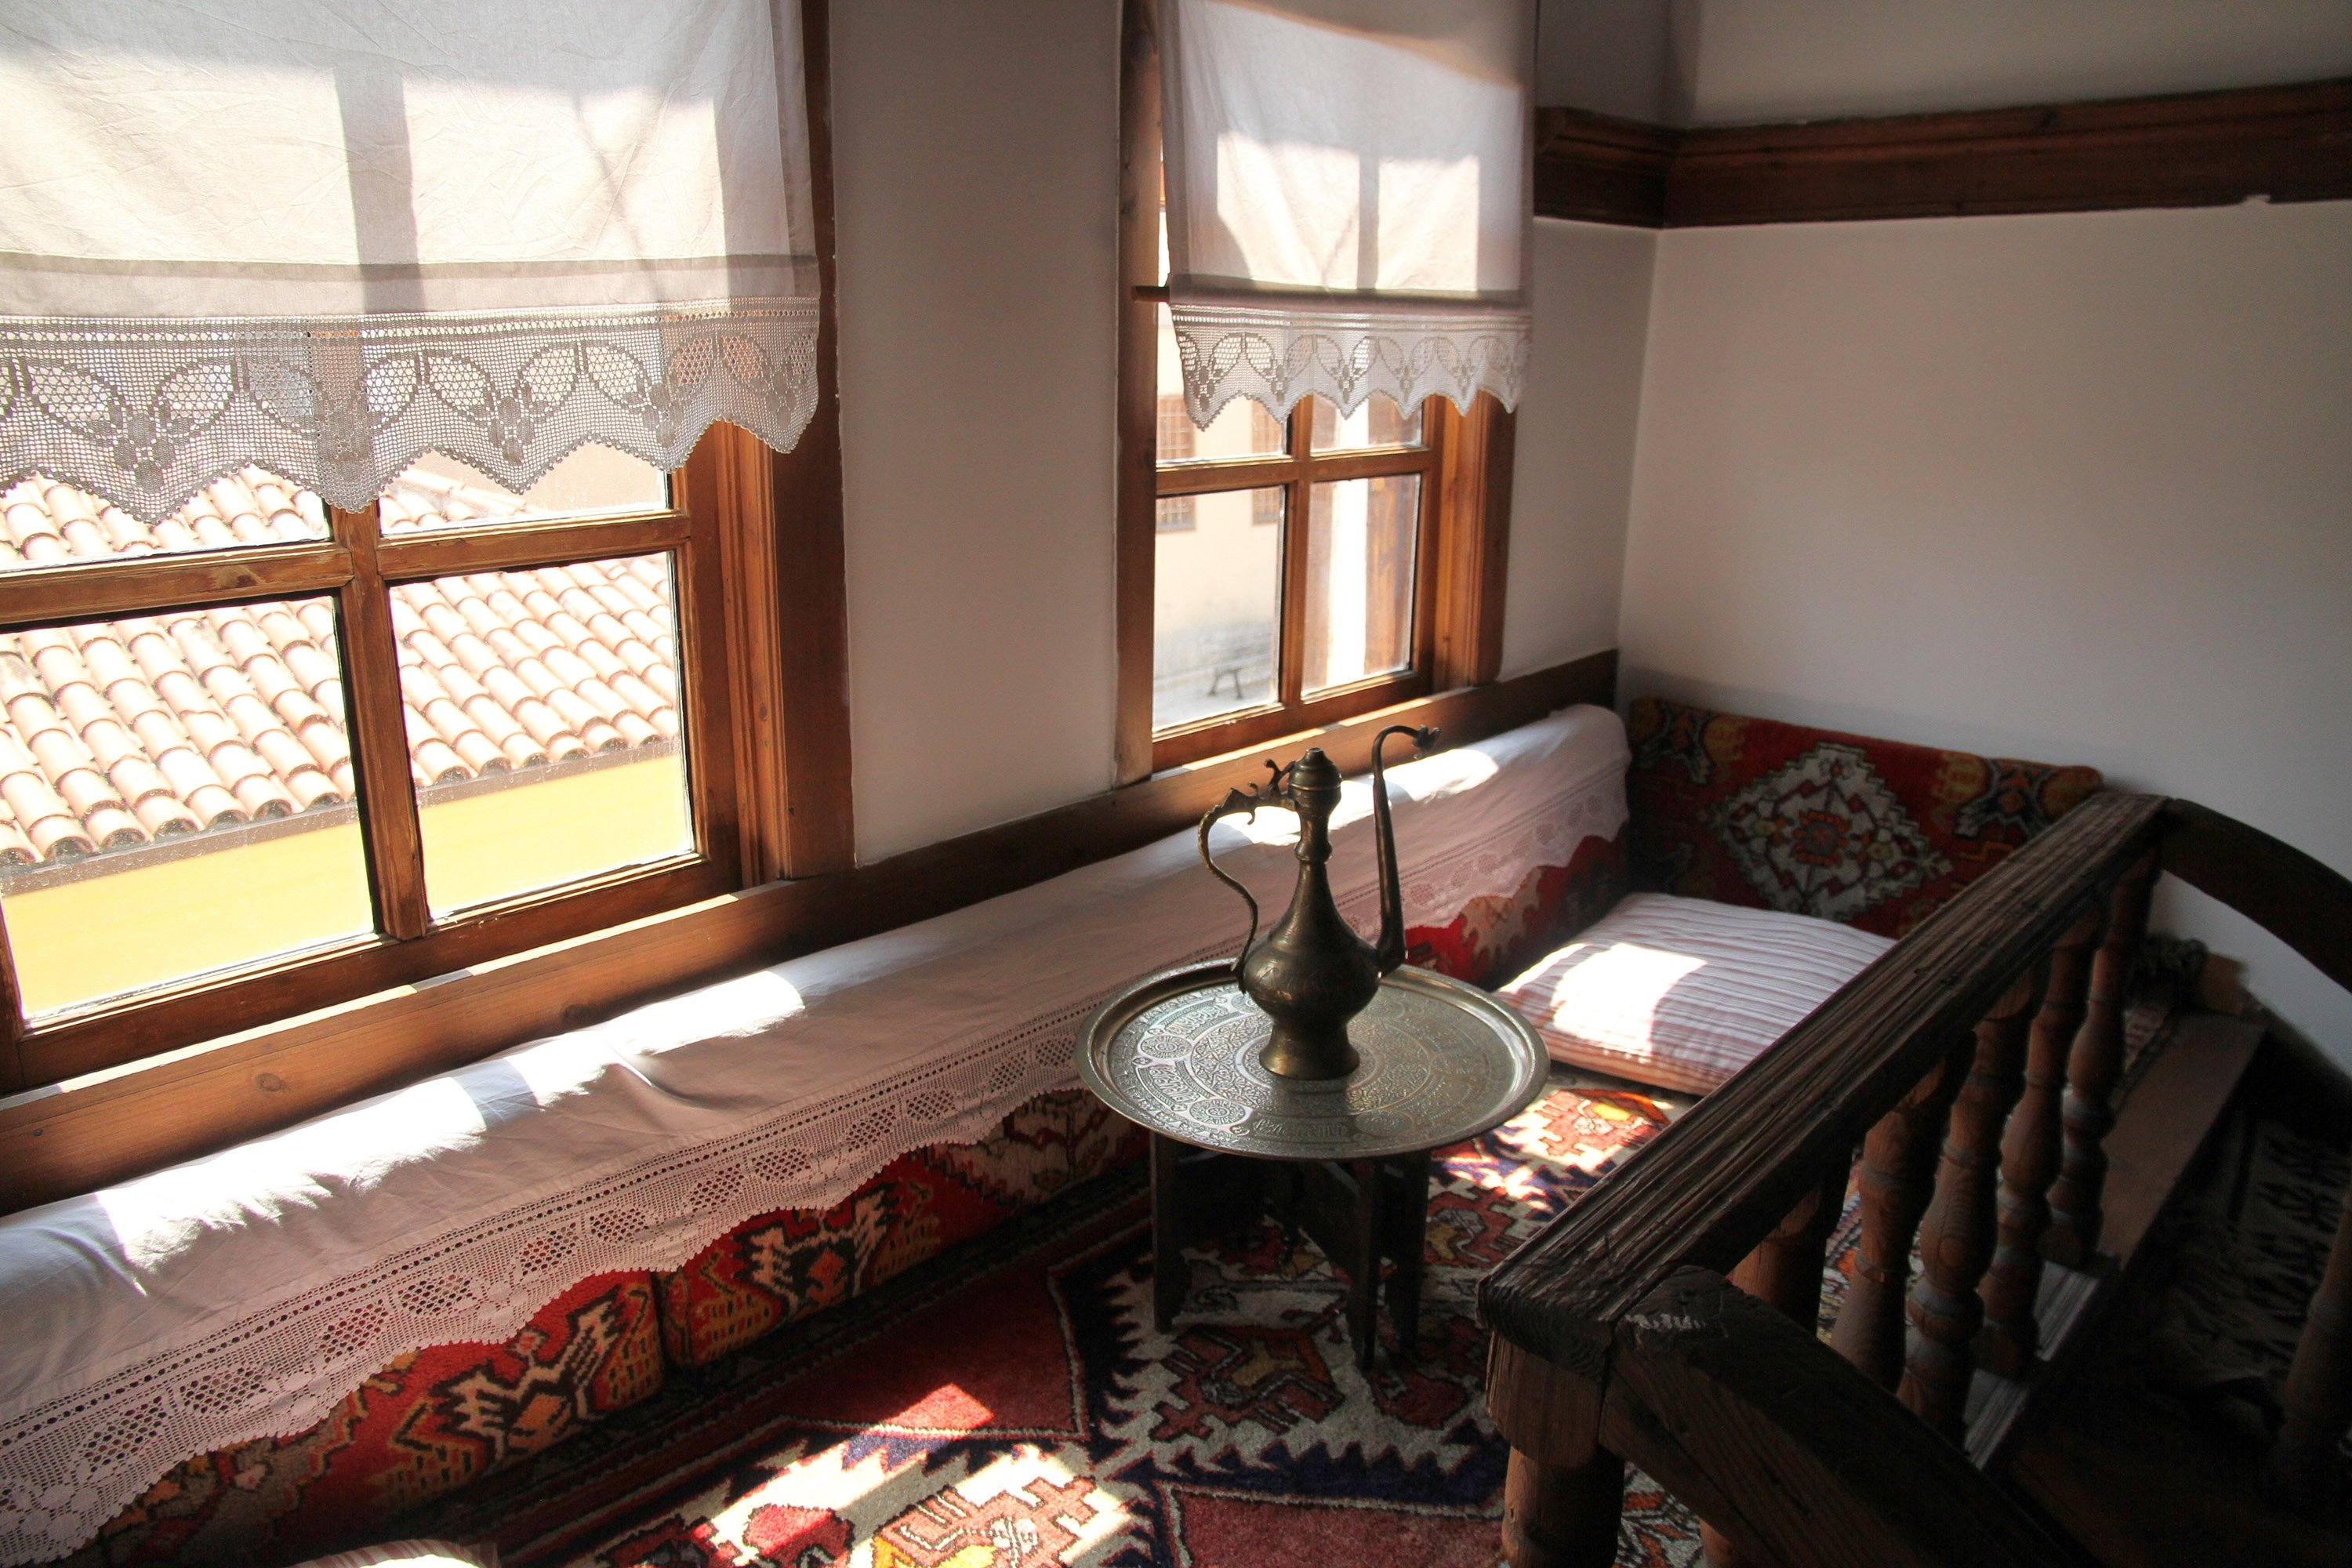 In traditional Safranbolu houses, you'll see sofas covered by Turkish lace, though it is not commonplace anymore.